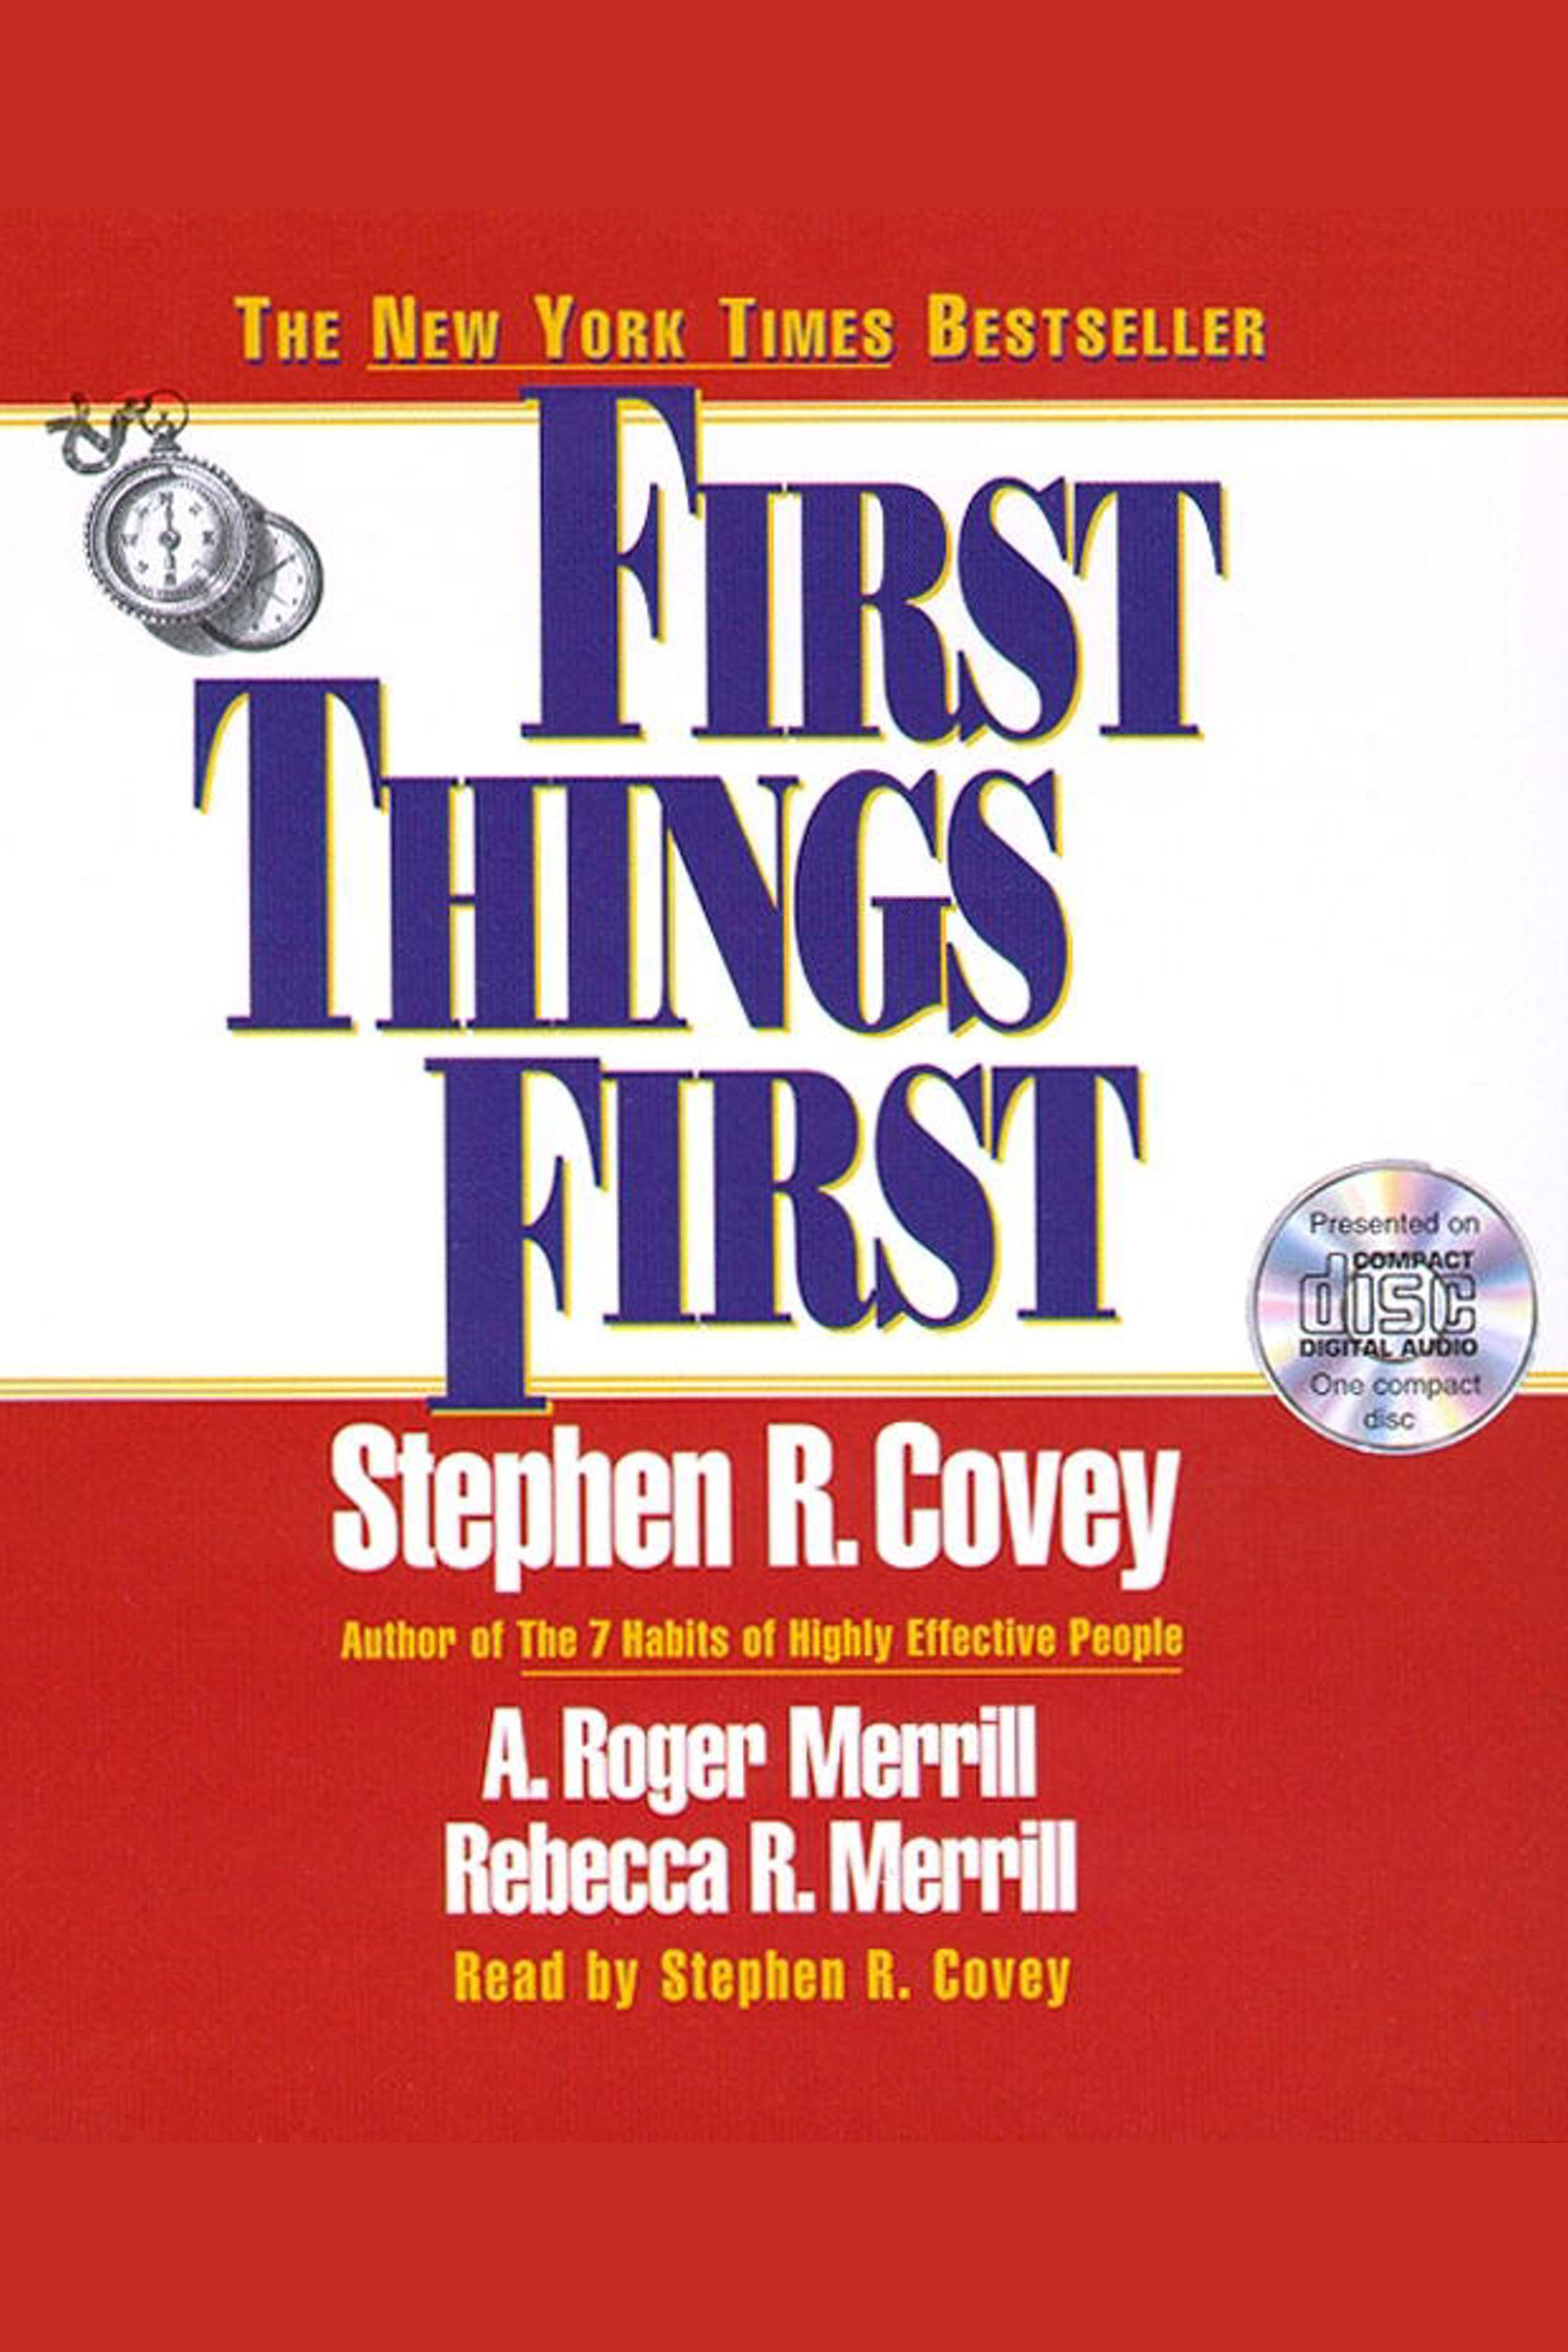 First Things First cover image